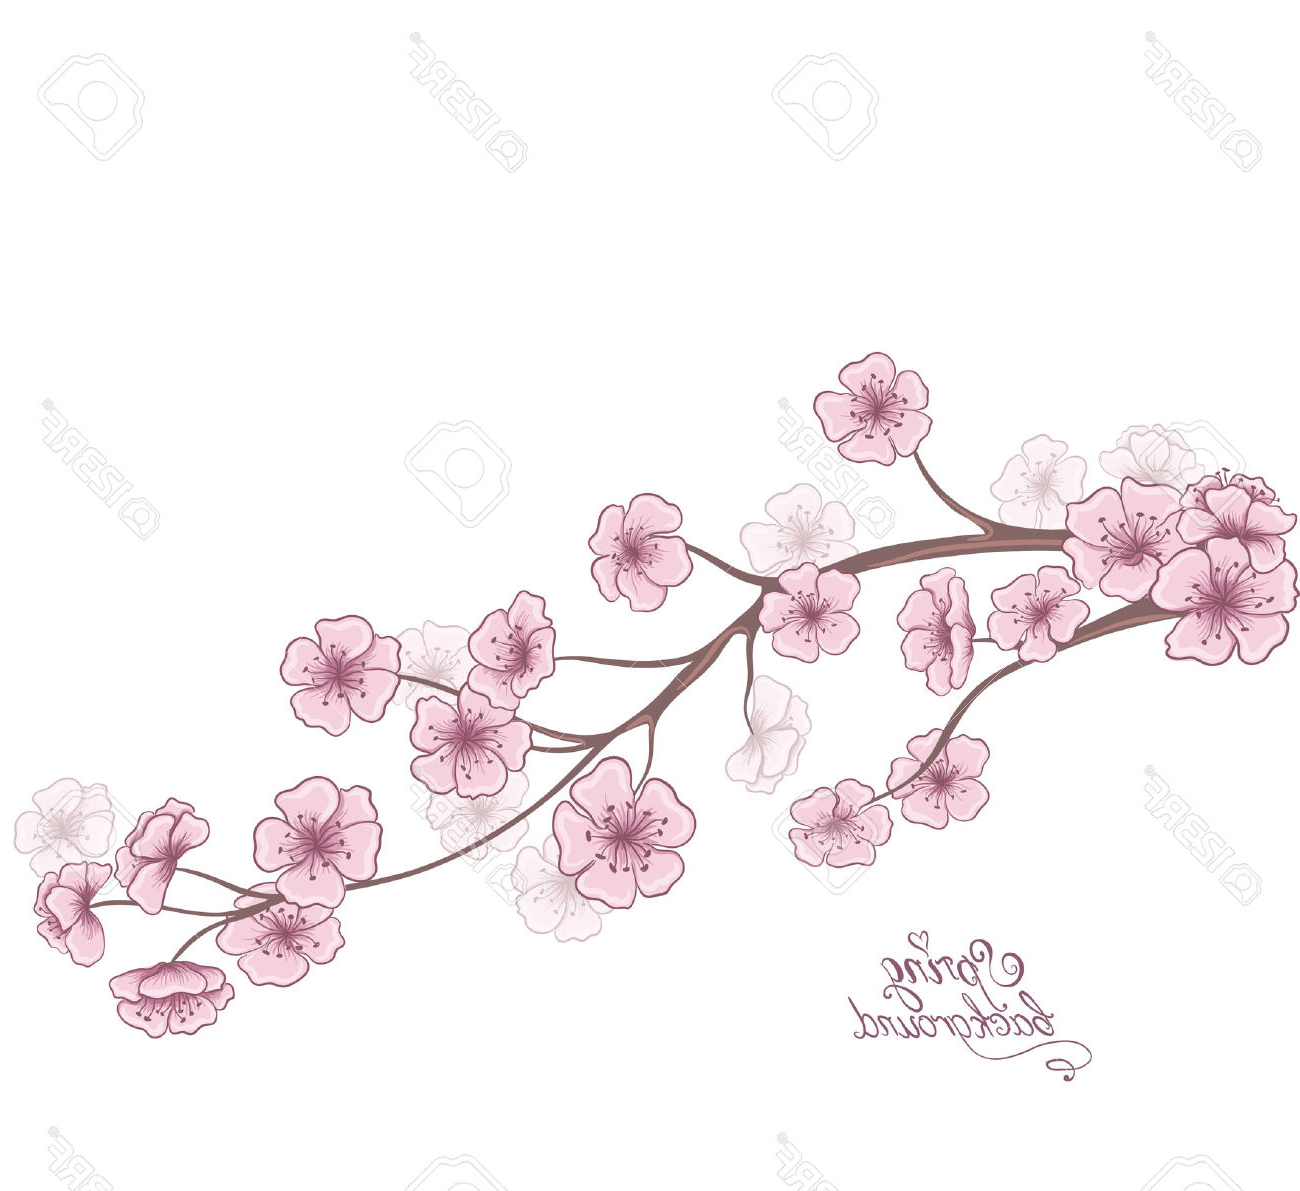 1300x1191 Cherry Blossom Flower Branch Drawing Cherry Branch In Blossom